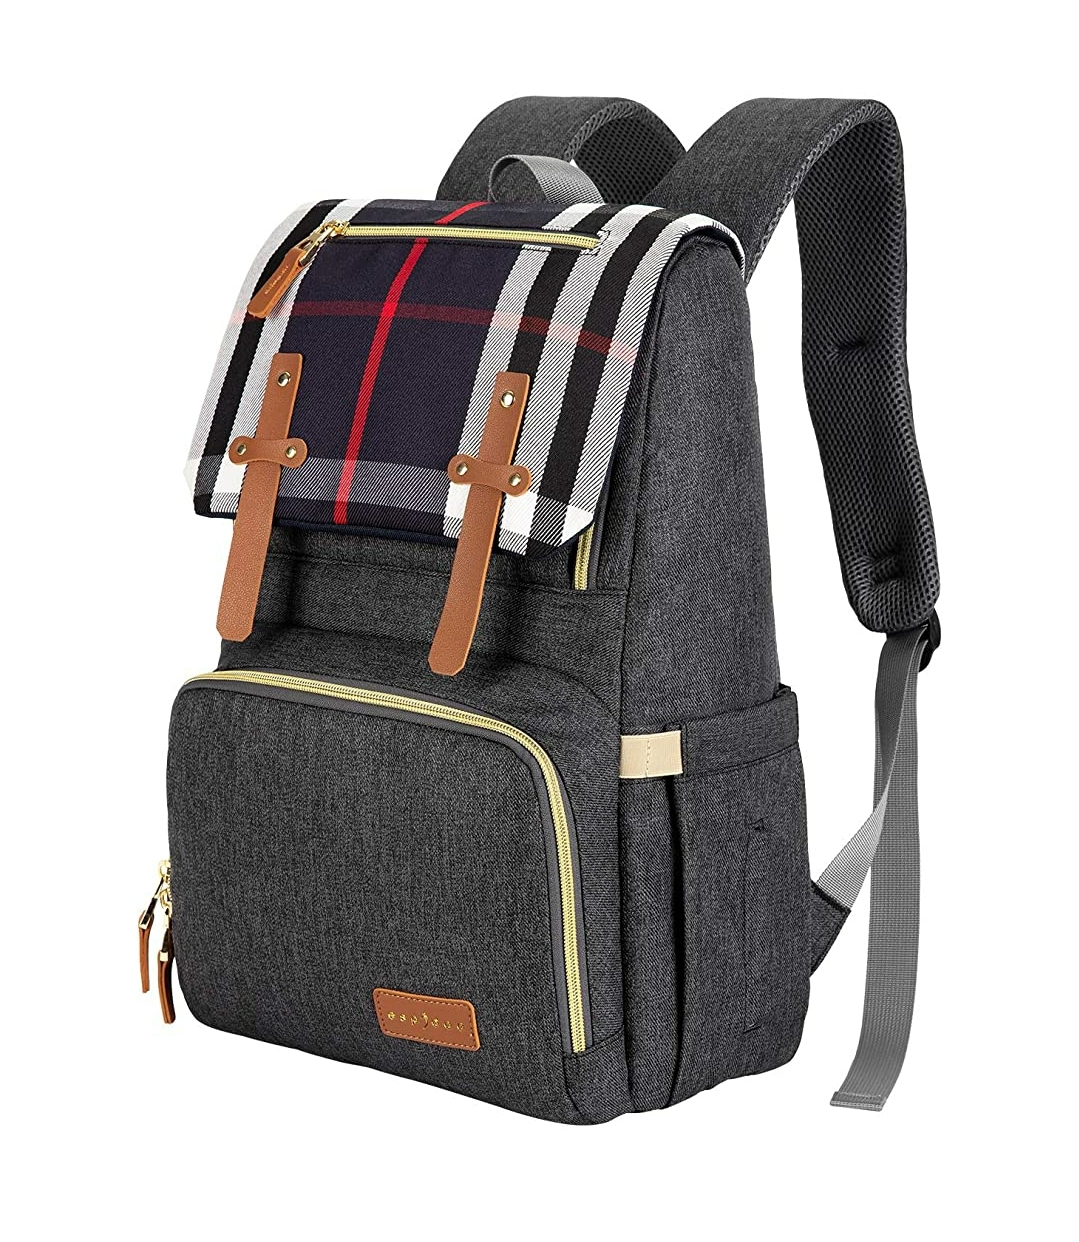 Espidoo Backpack Diaper Bag – Dark Grey/Plaid